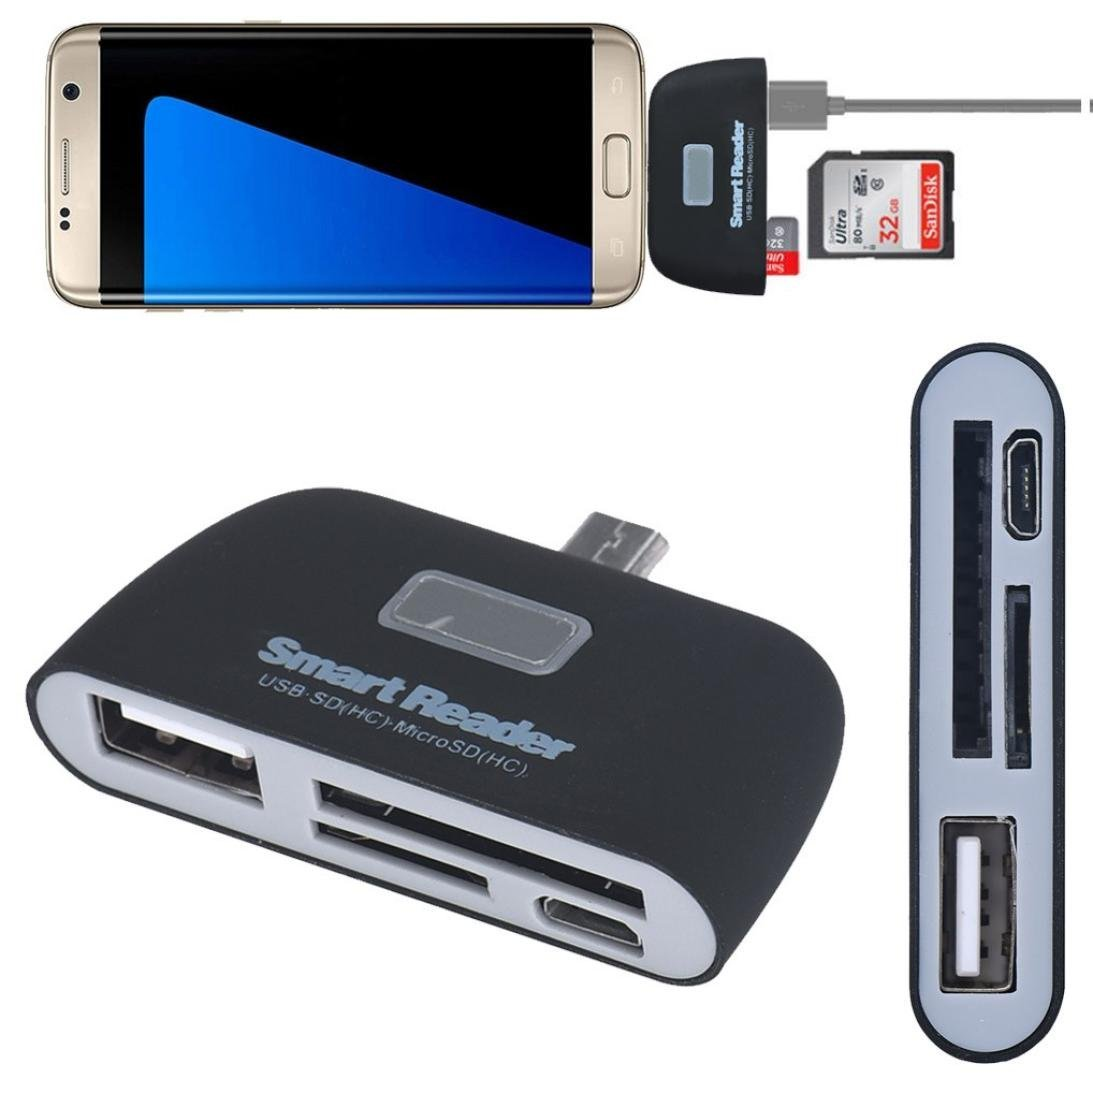 Memory Card Readers, Support SD (HC) /TF Memory Card, USB Output Port, Micro USB 3 in 1 OTG Adapter for Samsung Galaxy S6/S7/S6Edge/S7Edge and other Micro USB interfaces Smart Phone.